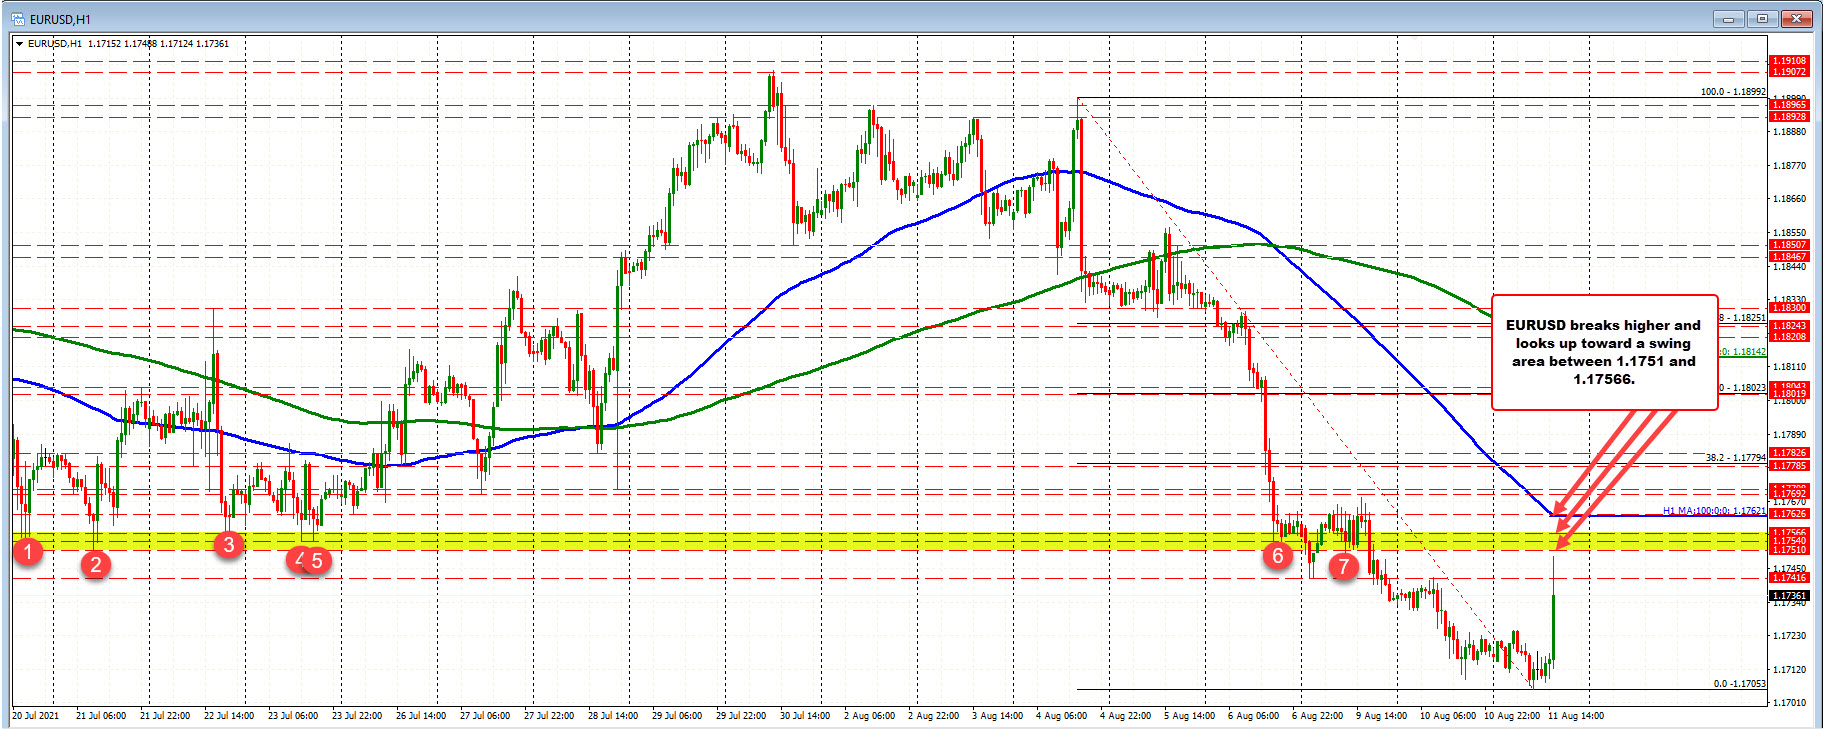 Swing area between 1.1751 1.17566.Falling 100 hour moving average above that at 1.17613.